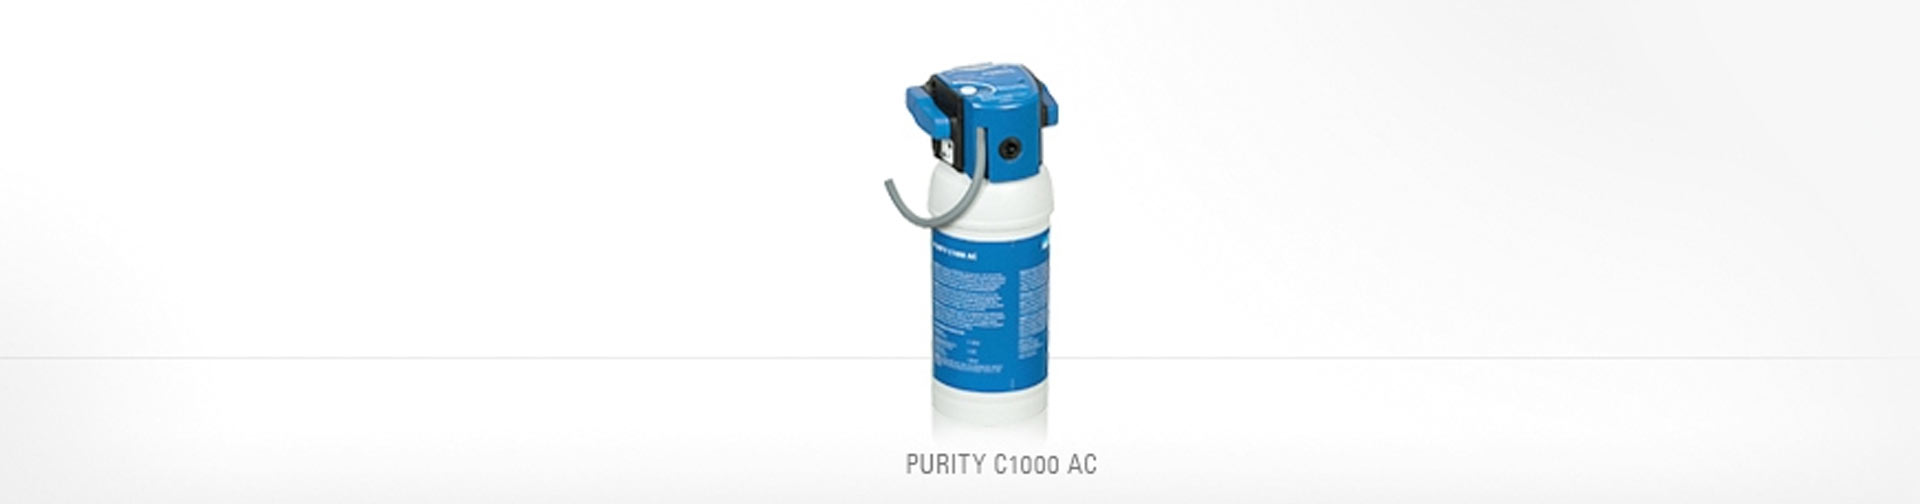 PURITY C1000 AC